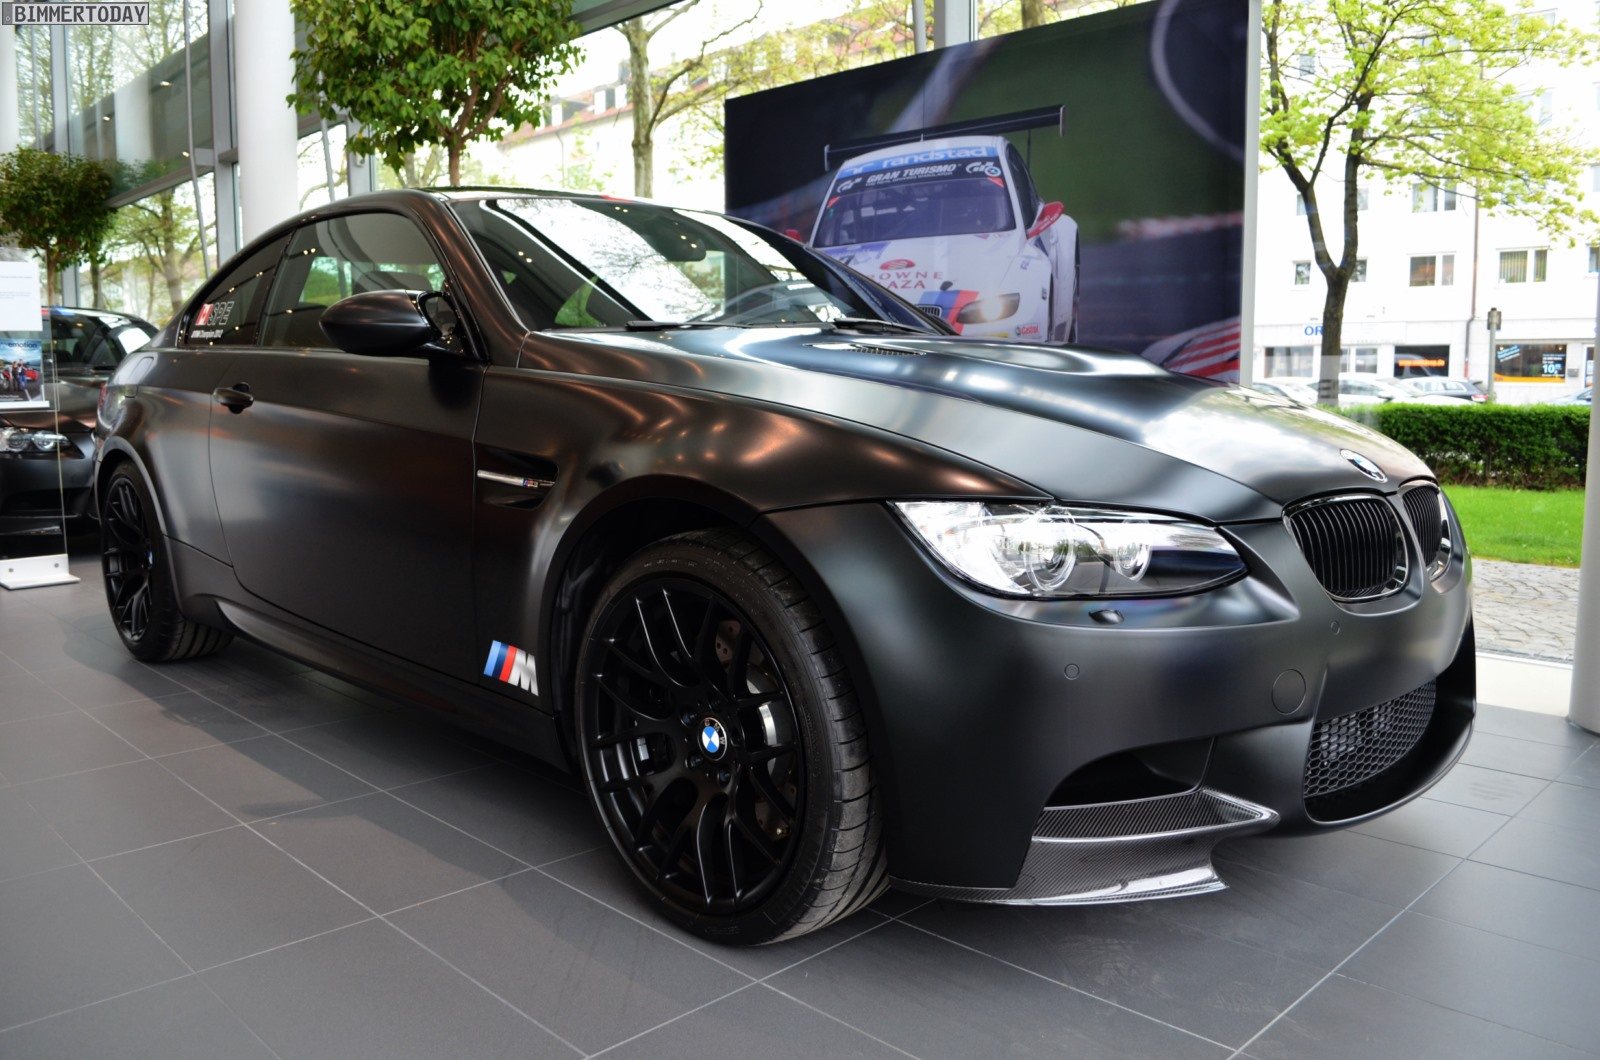 2019 BMW M3 DTM Champion Edition | Car Photos Catalog 2019